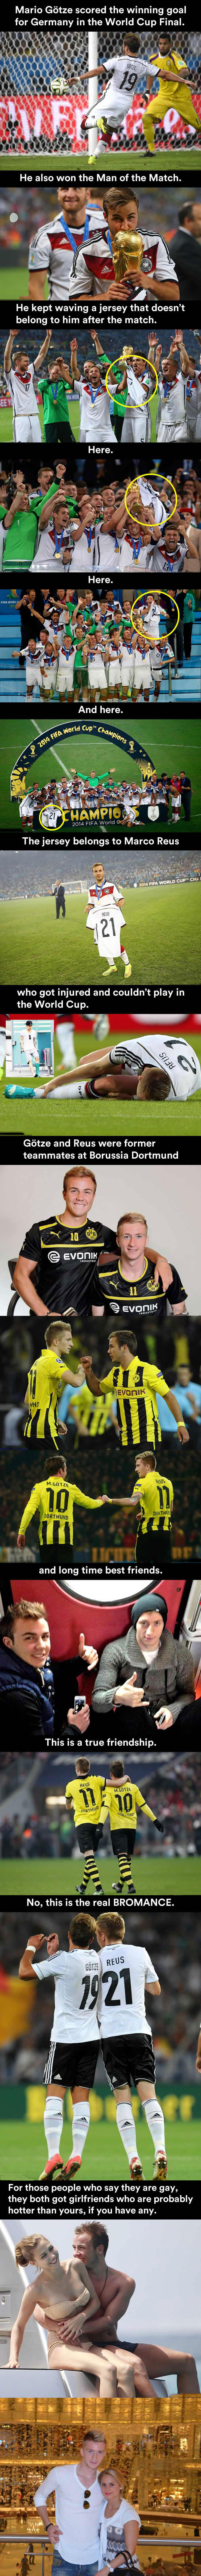 the biggest bromance in fifa soccer, world cup 2014, germany, mario gotze, marco reus